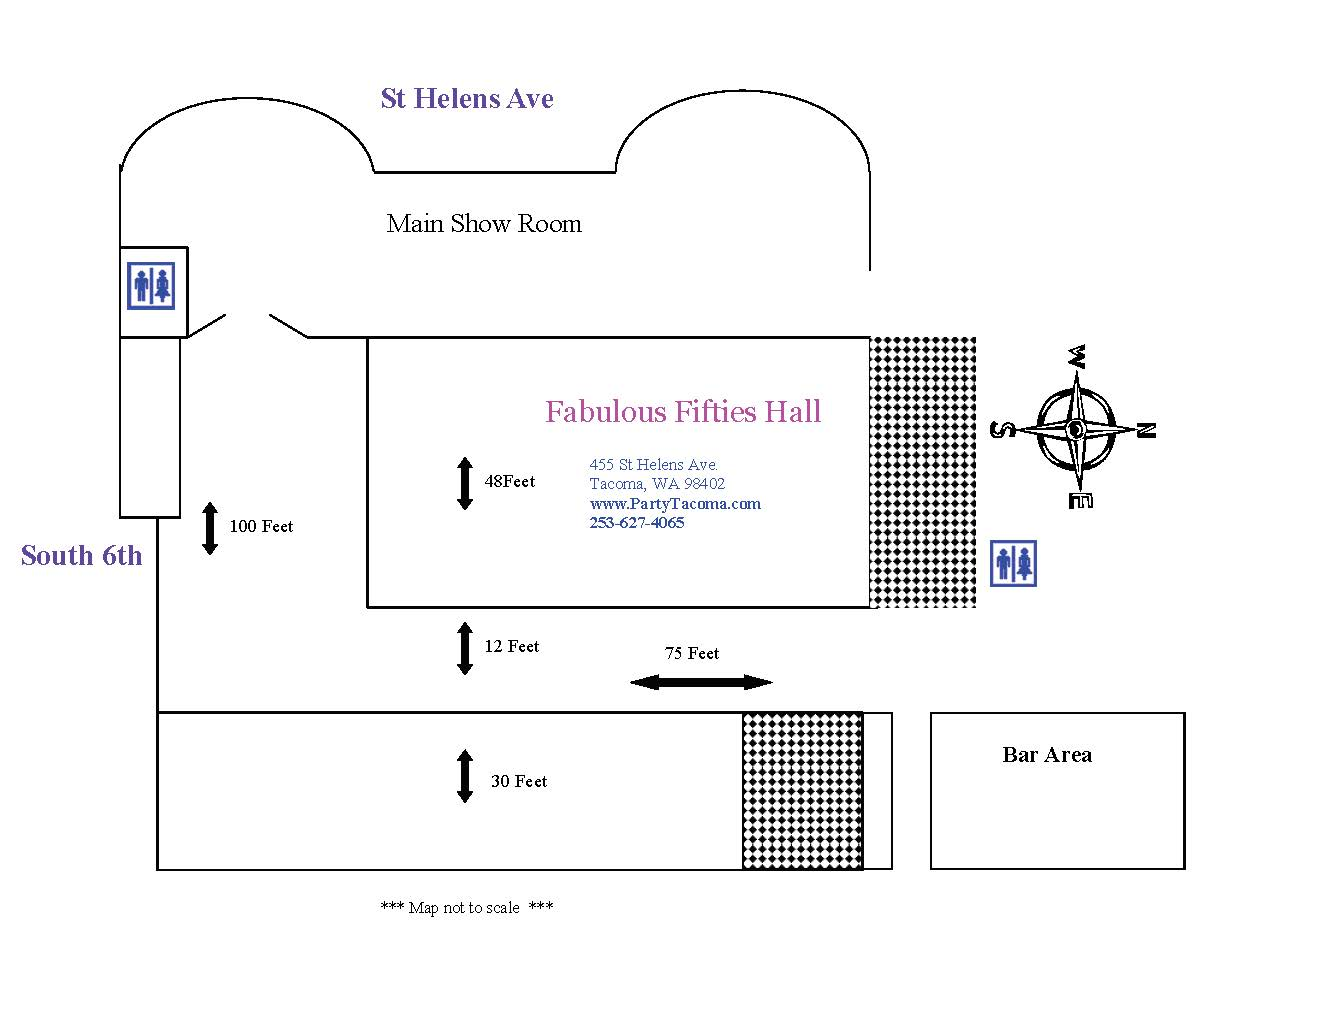 The Fabulous Fifties Hall Layout *** Not to scale